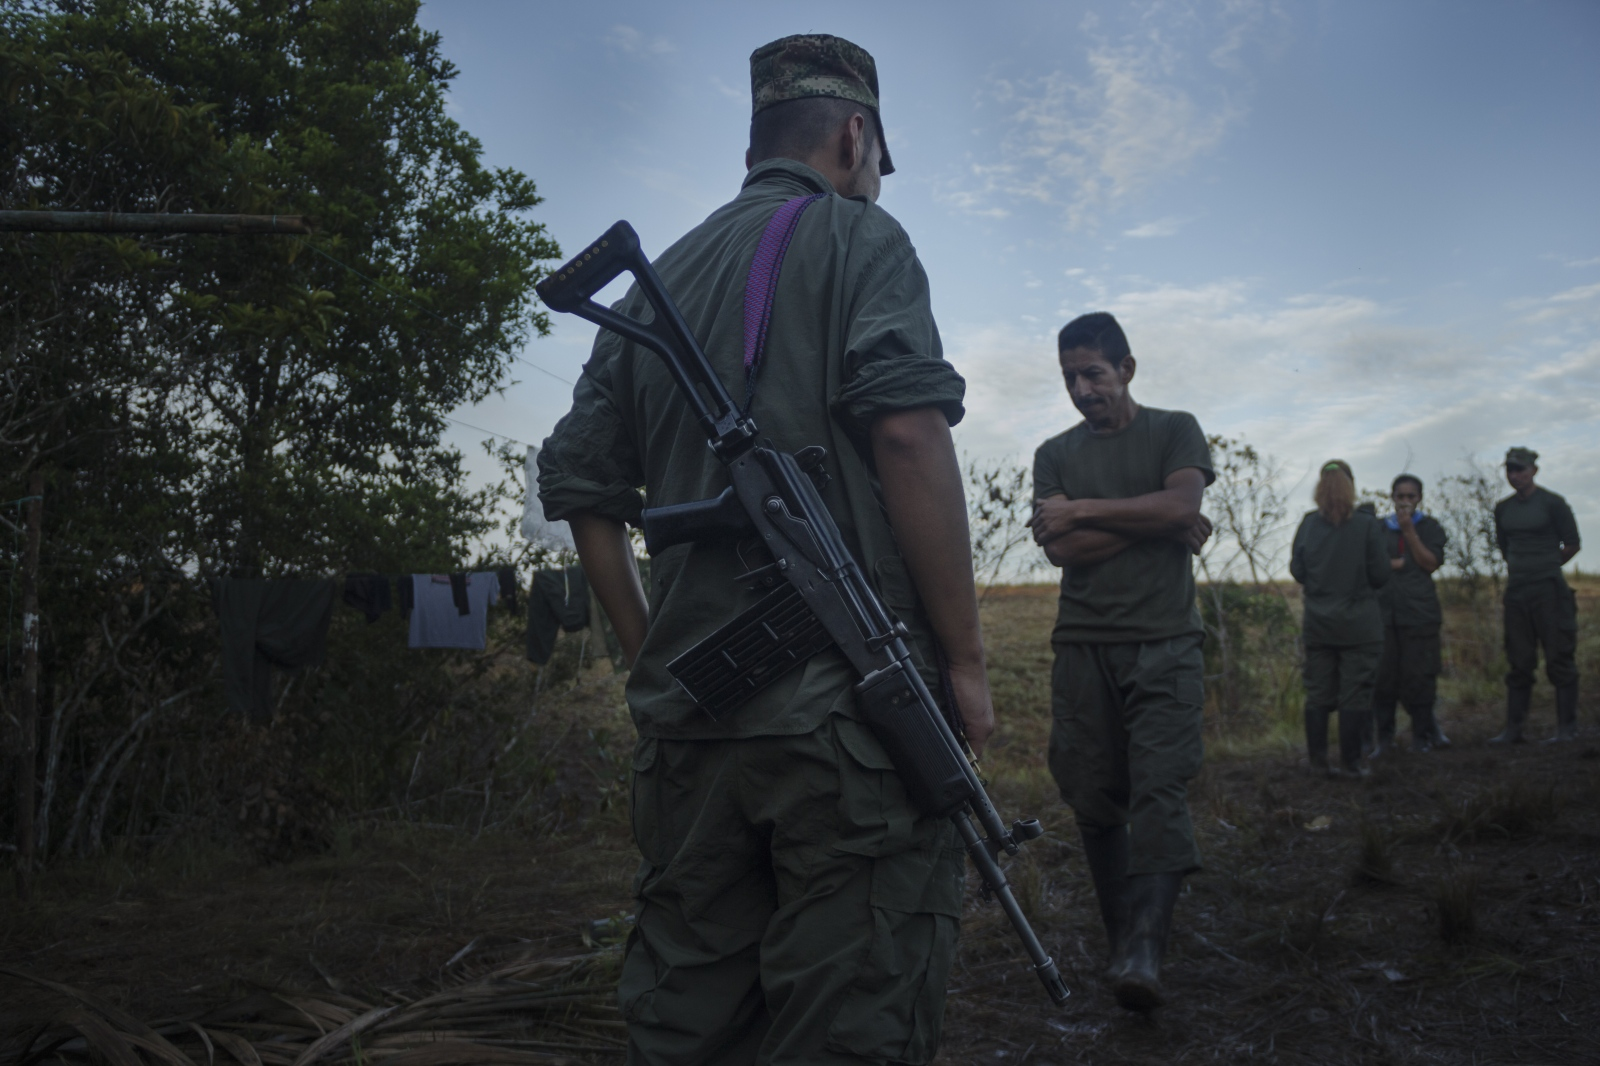 FARC EP guerrillas breaking ranks after their commanders gave notice of their daily work.